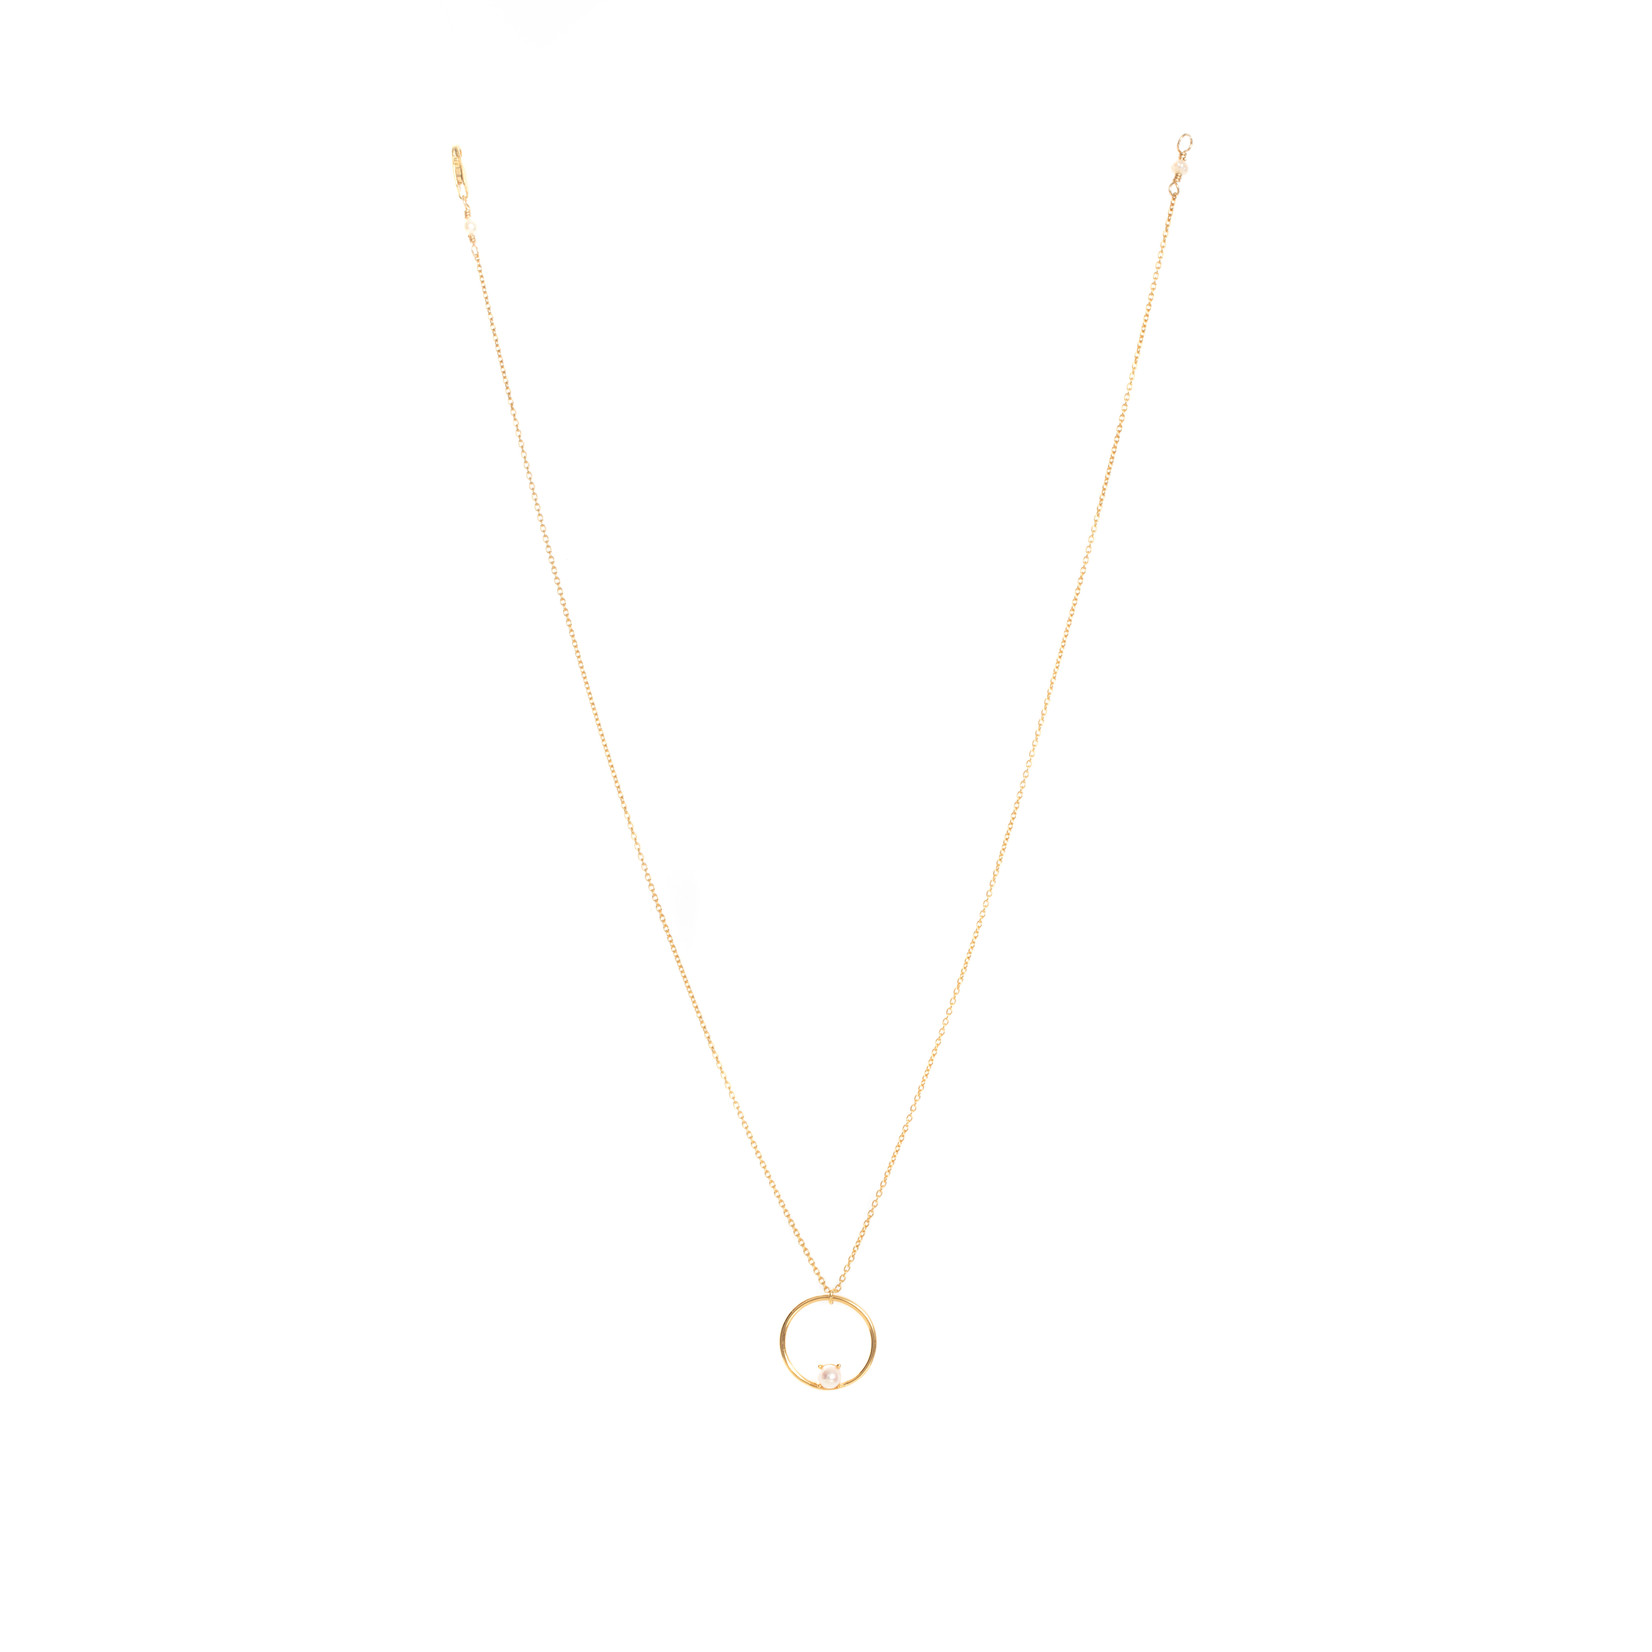 Hailey Gerrits Classic Beech Necklace